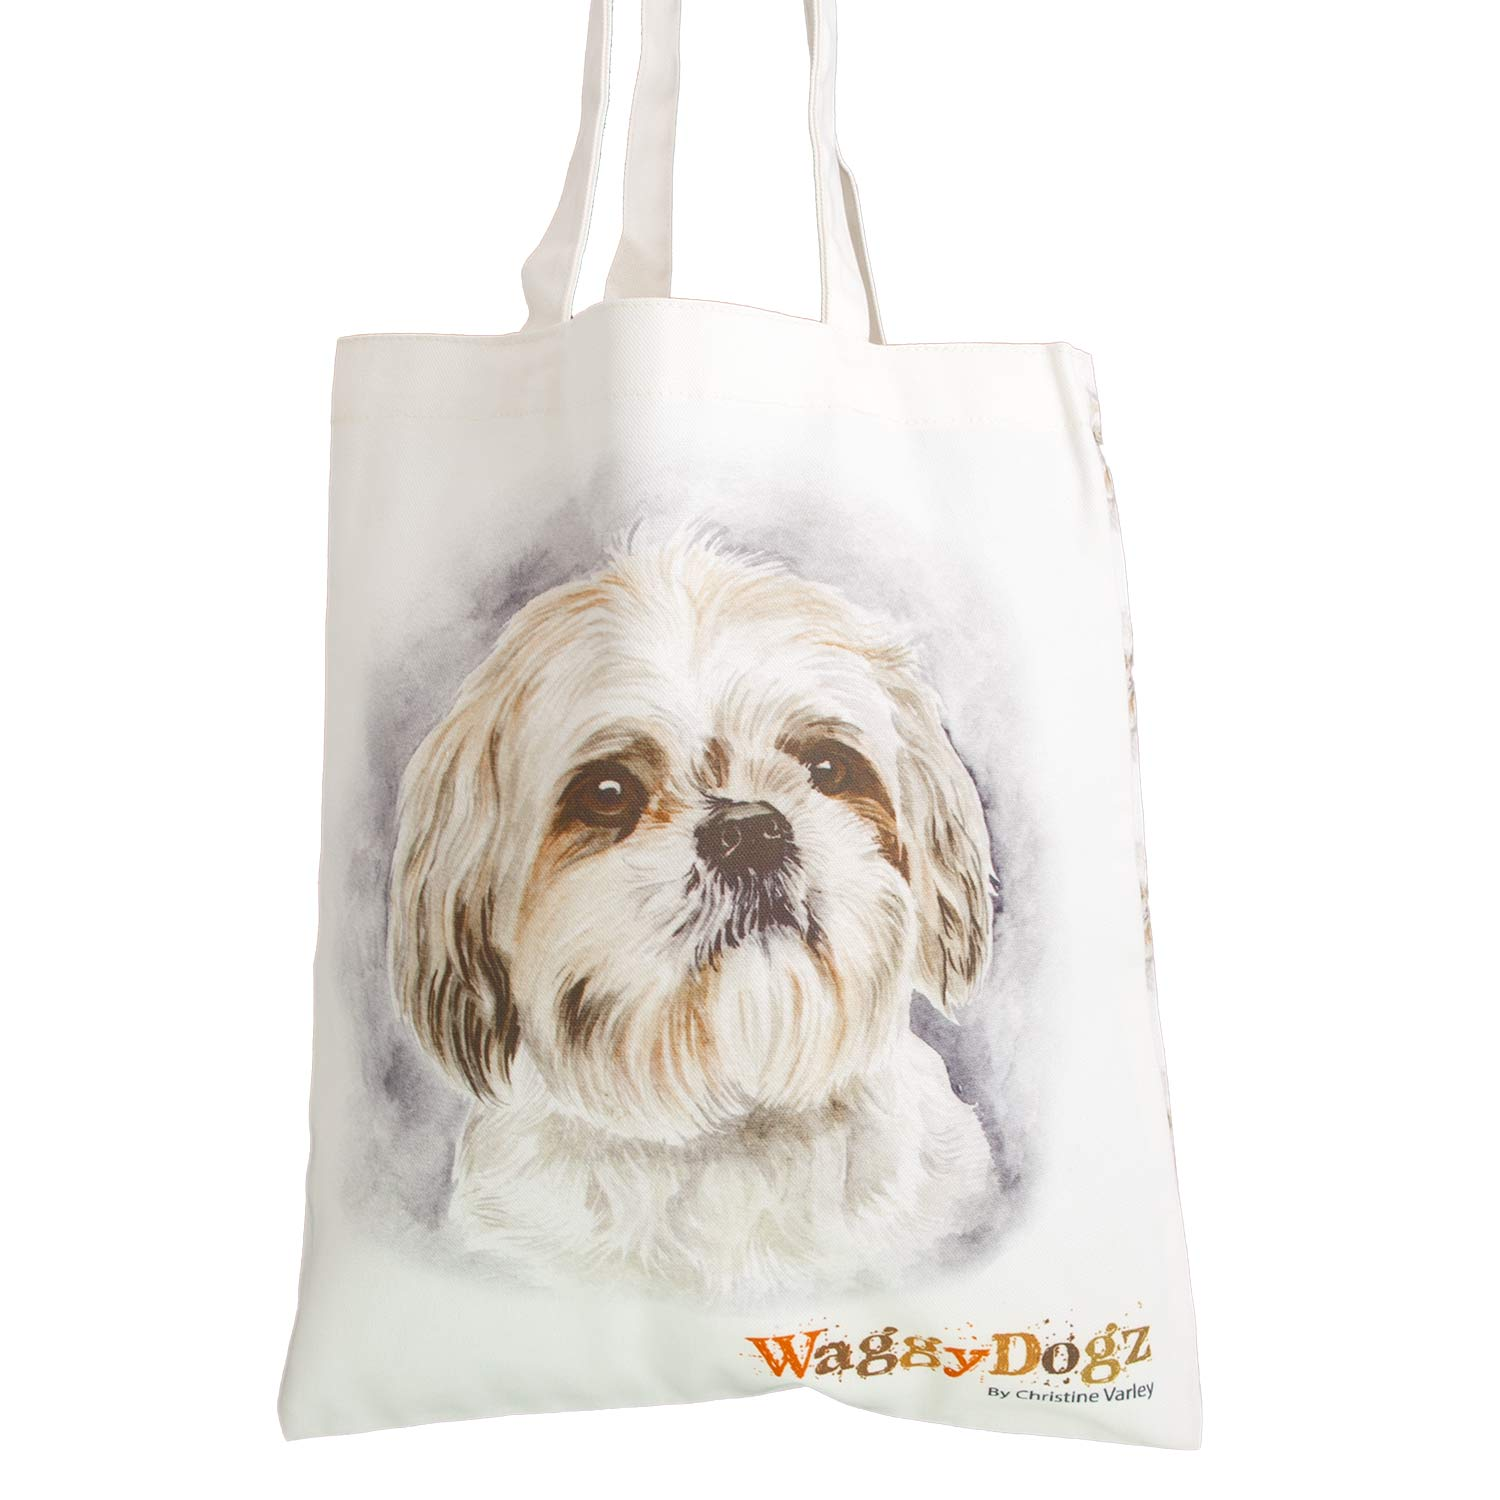 Dog Lover Gifts available at Dog Krazy Gifts. Shih Tzu Bag, part of our Christine Varley collection – available at www.dogkrazygifts.co.uk A Double Sided organic Cotton Tote bag featuring a painting of a Shih Tzu Dog by Christine Varley, made and printed in Great Britain